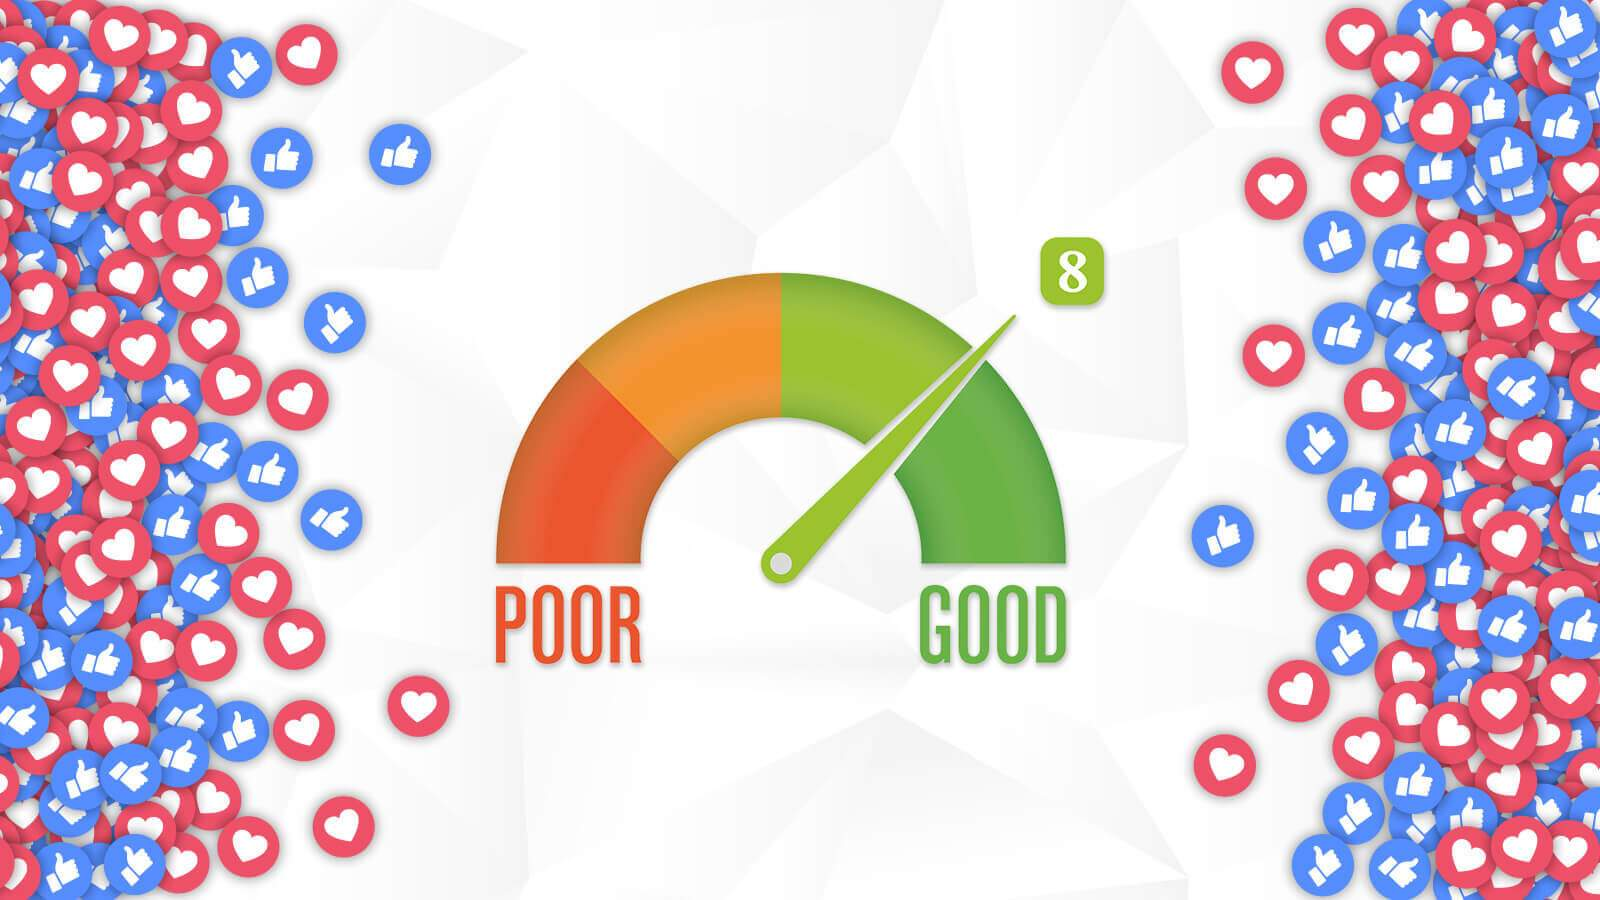 Relevance Score in Facebook Ads